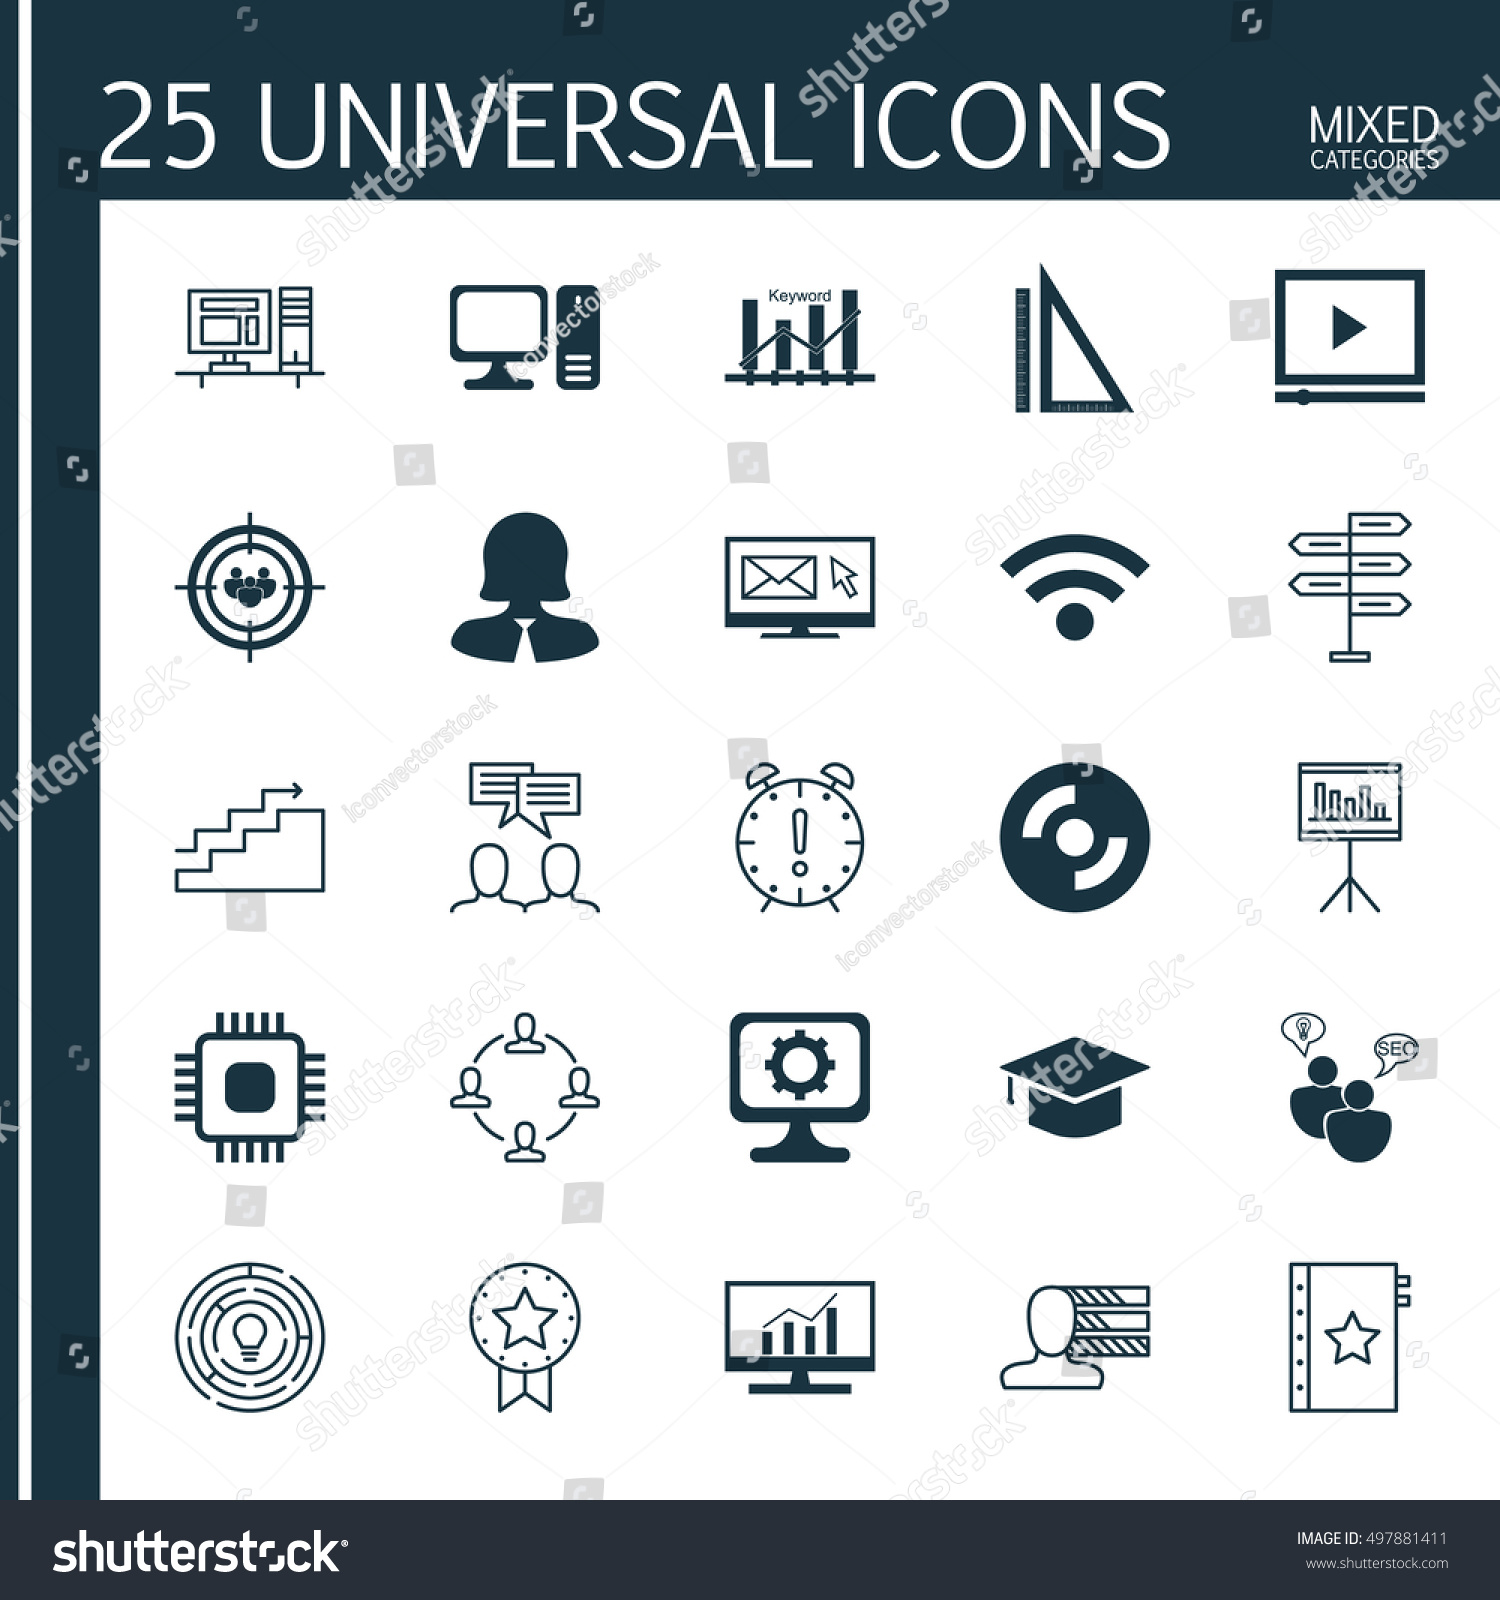 Set 25 Universal Icons On Computer Stock Vector (Royalty